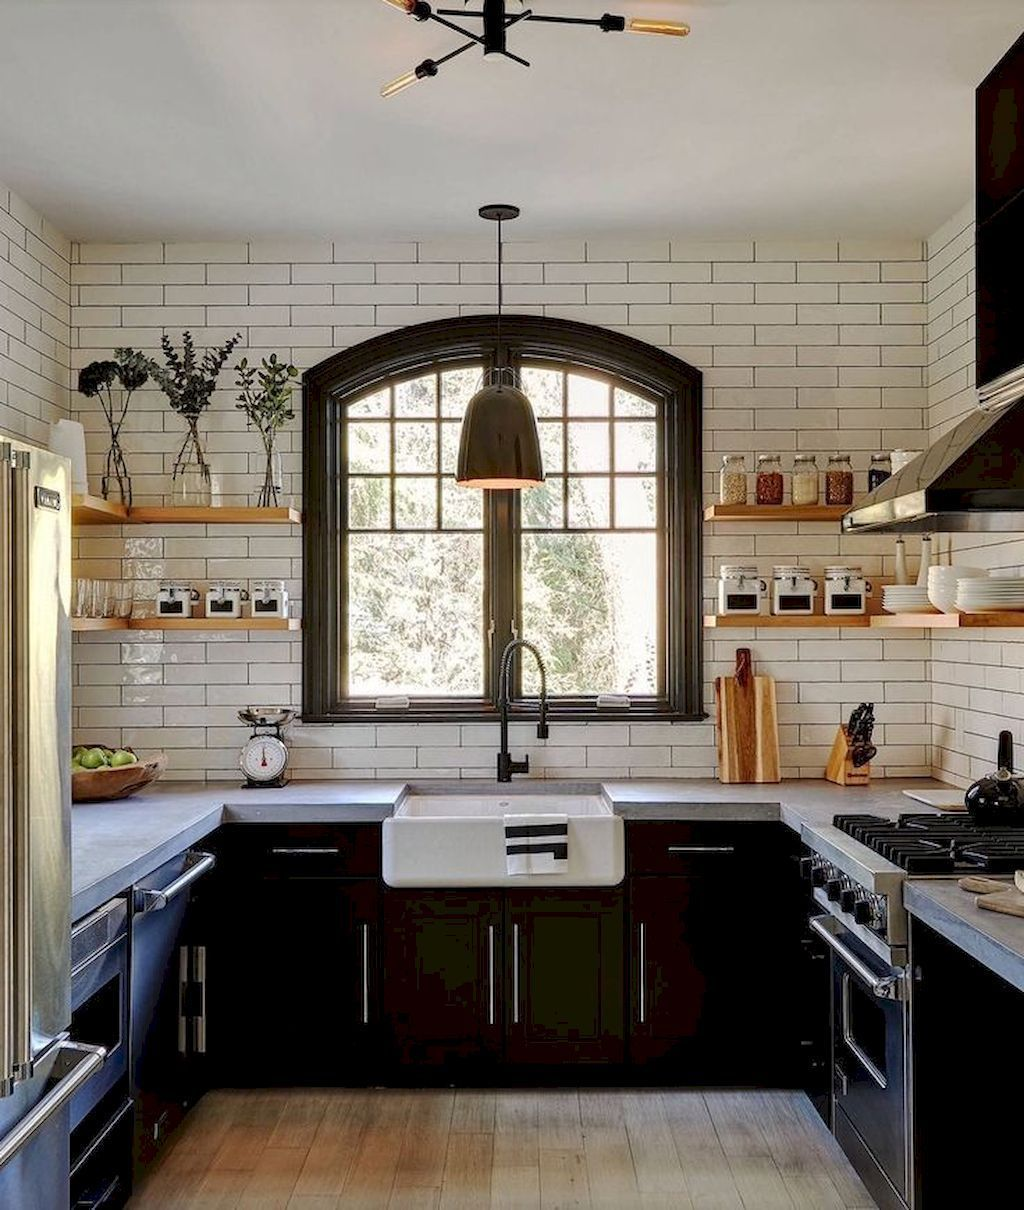 My favorite inspiration photos and ideas for decorating and remodeling the heart of your home, your kitchen!. see more ideas virtually Kitchen #likitchendecorideas